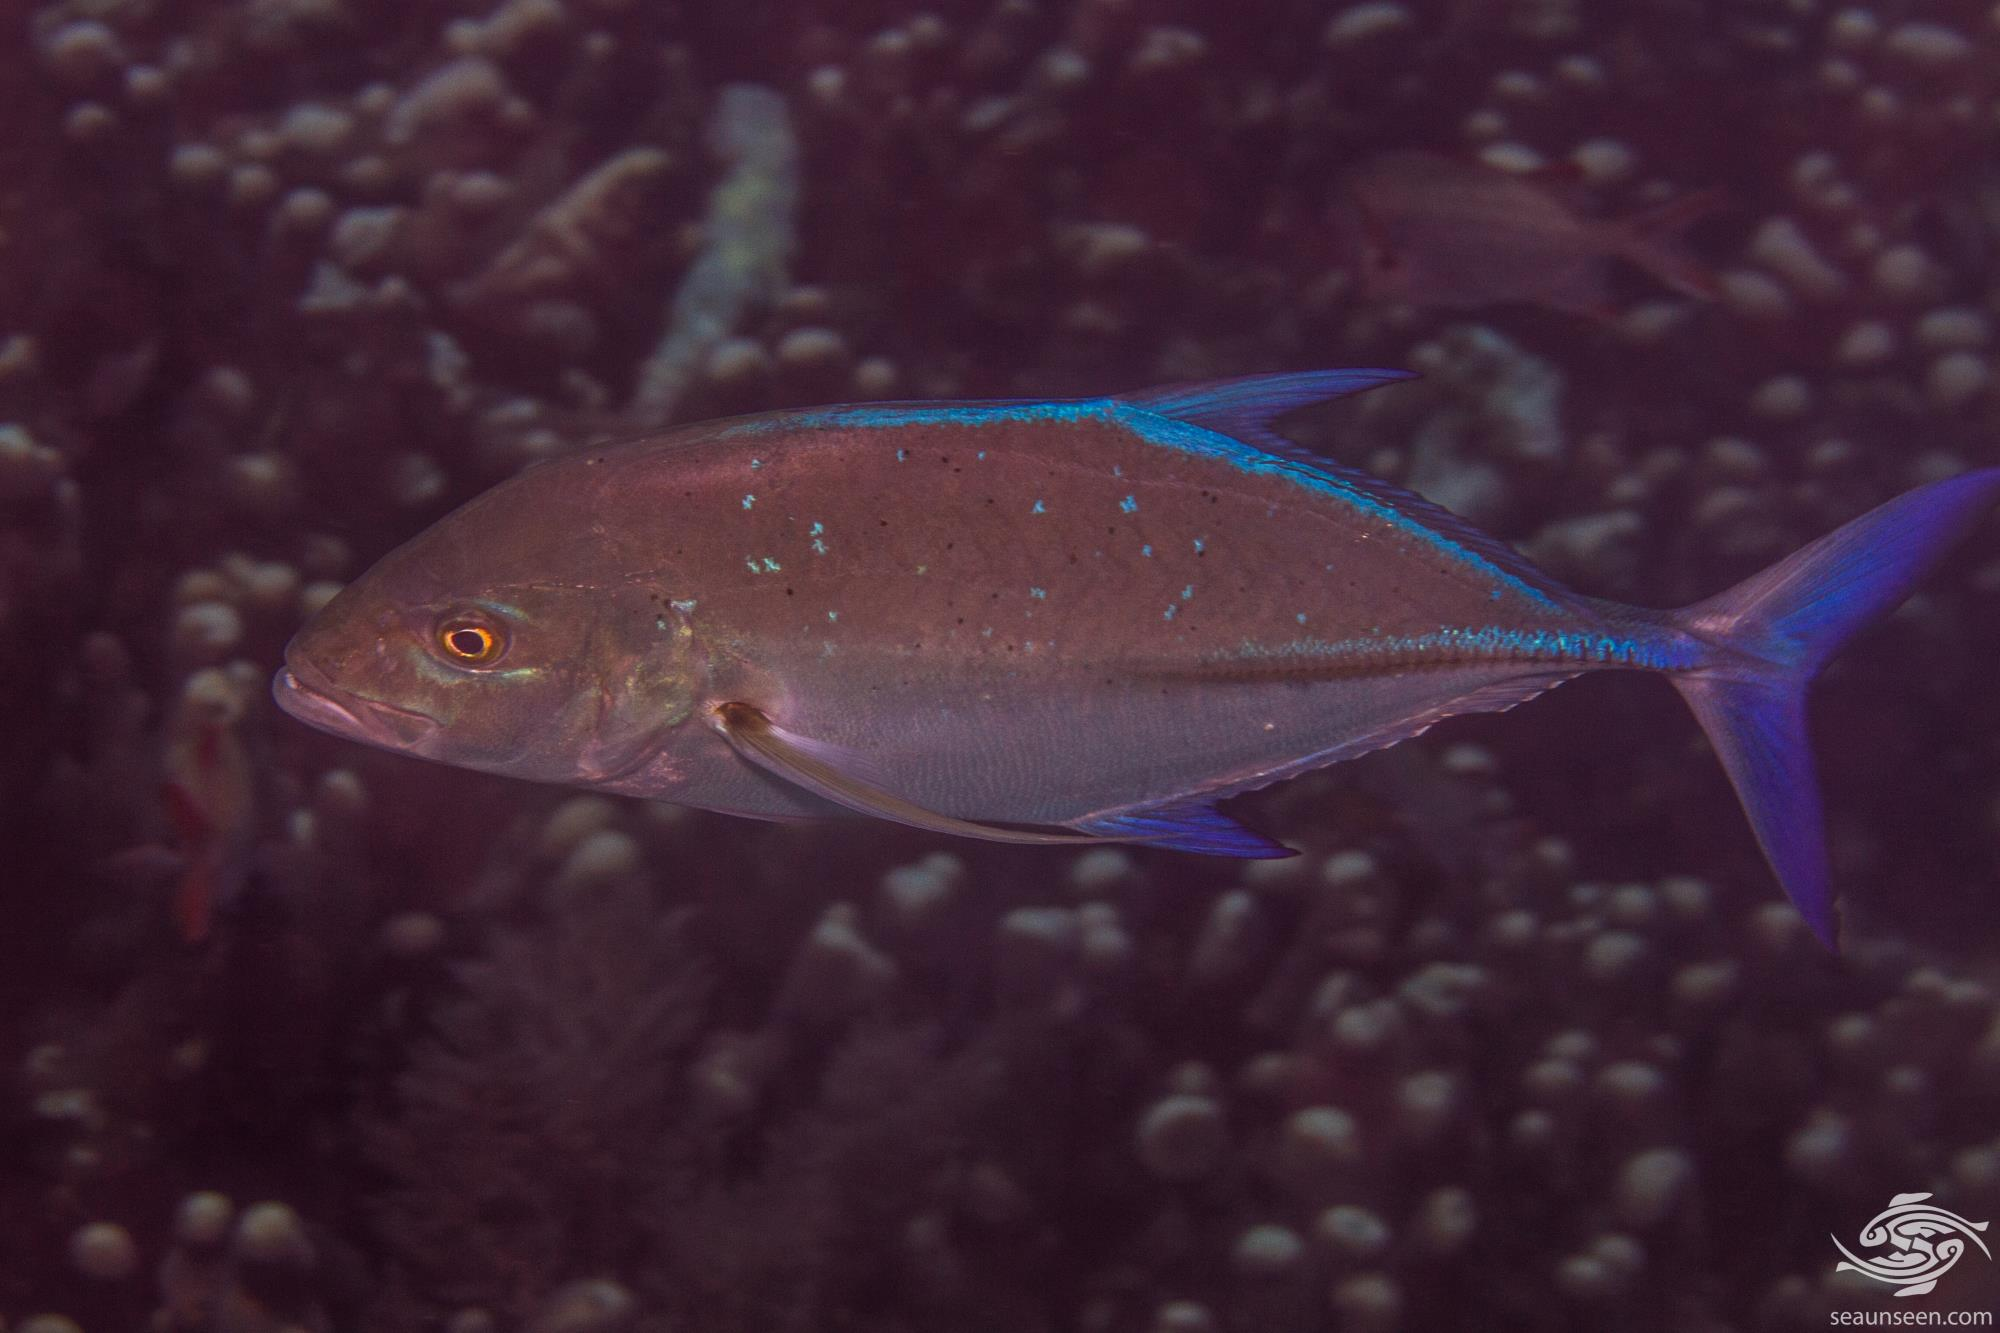 bluefin trevally, Caranx melampygus is also known as the bluefin jack, blue finned crevalle, omilu, blue ulua and in South Africa as the bluefin king fish